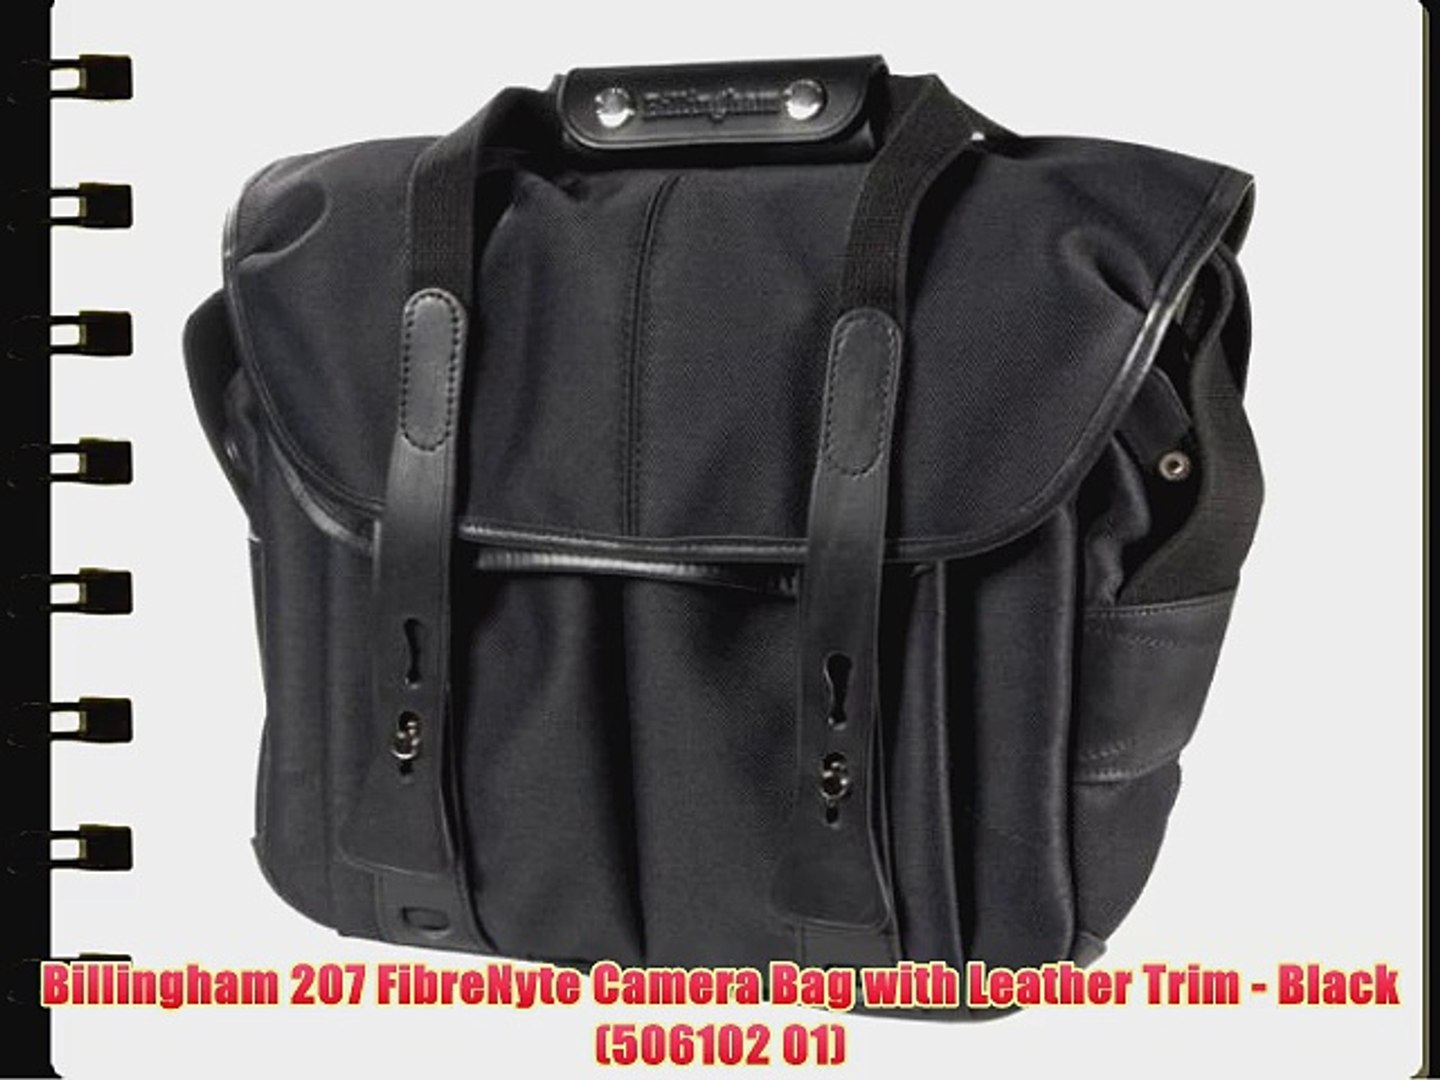 Billingham 207 Black FibreNyte Camera Bag with Black Leather Trim